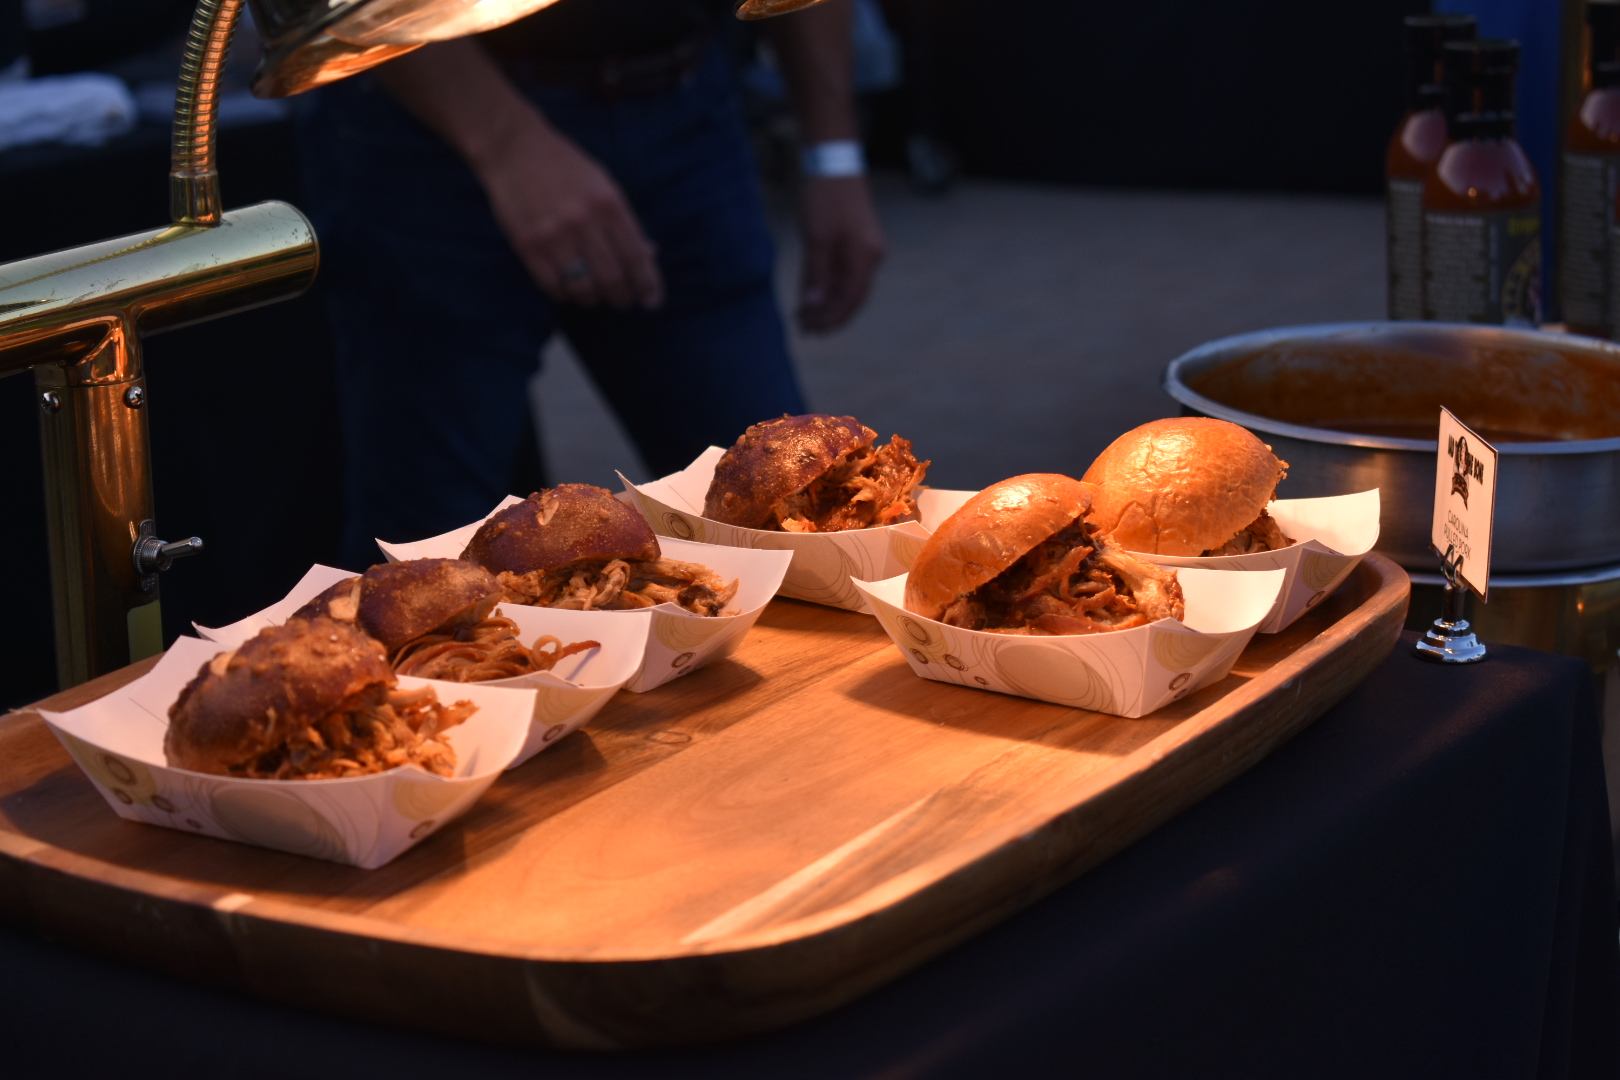 Carolina barbecue pulled pork sliders are ready to be eaten at this year's The Vintage Food & Wine Festival.